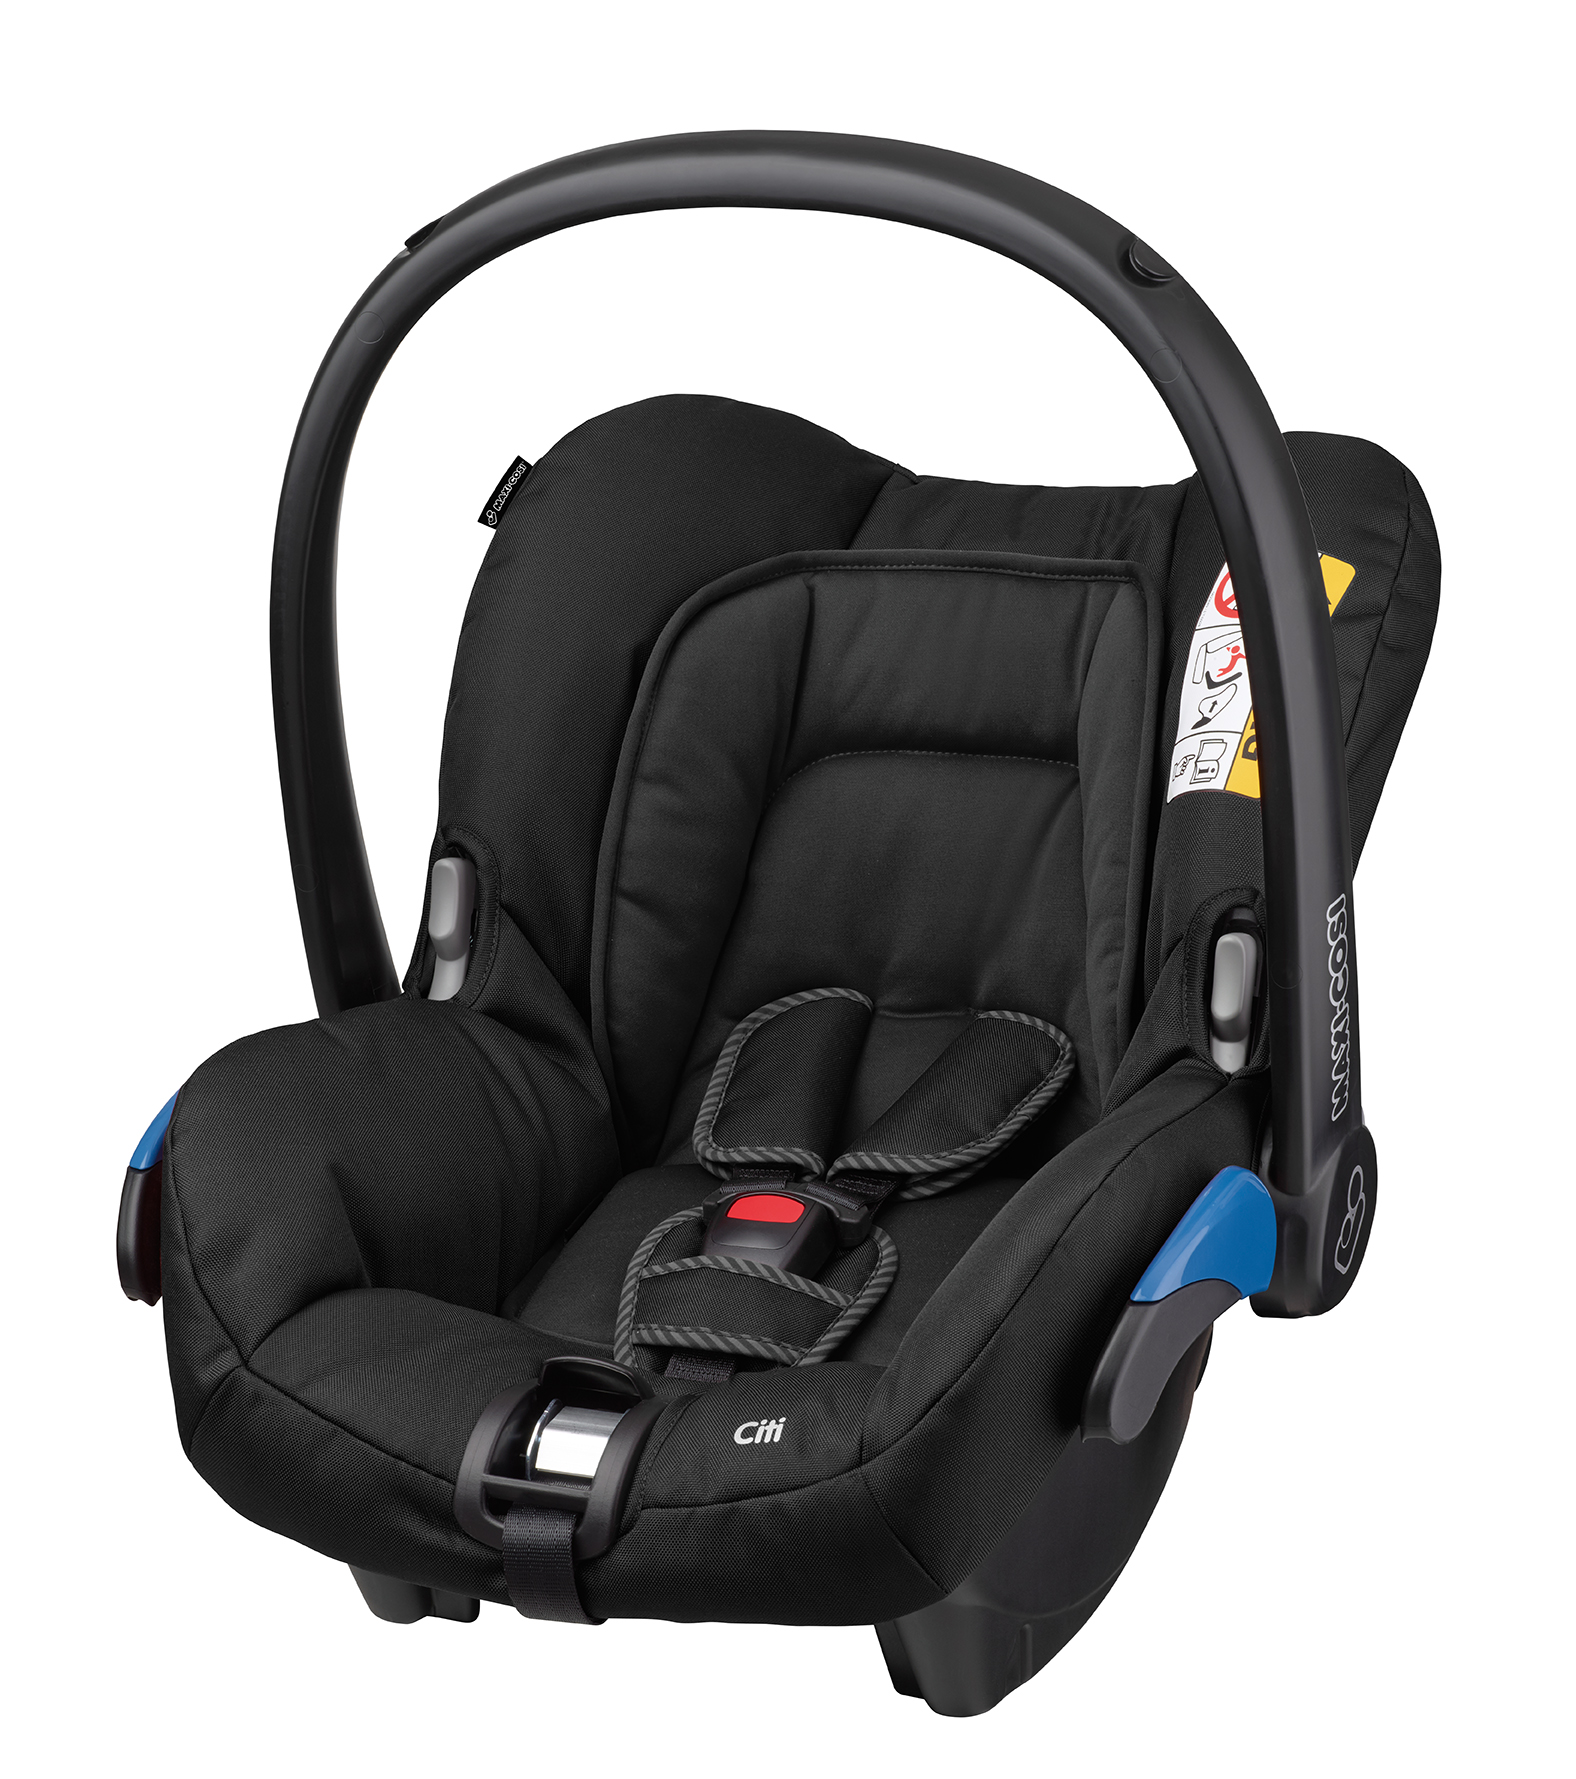 Maxi cosi infant carrier citi 2018 black raven buy at for Maxi cosi housse